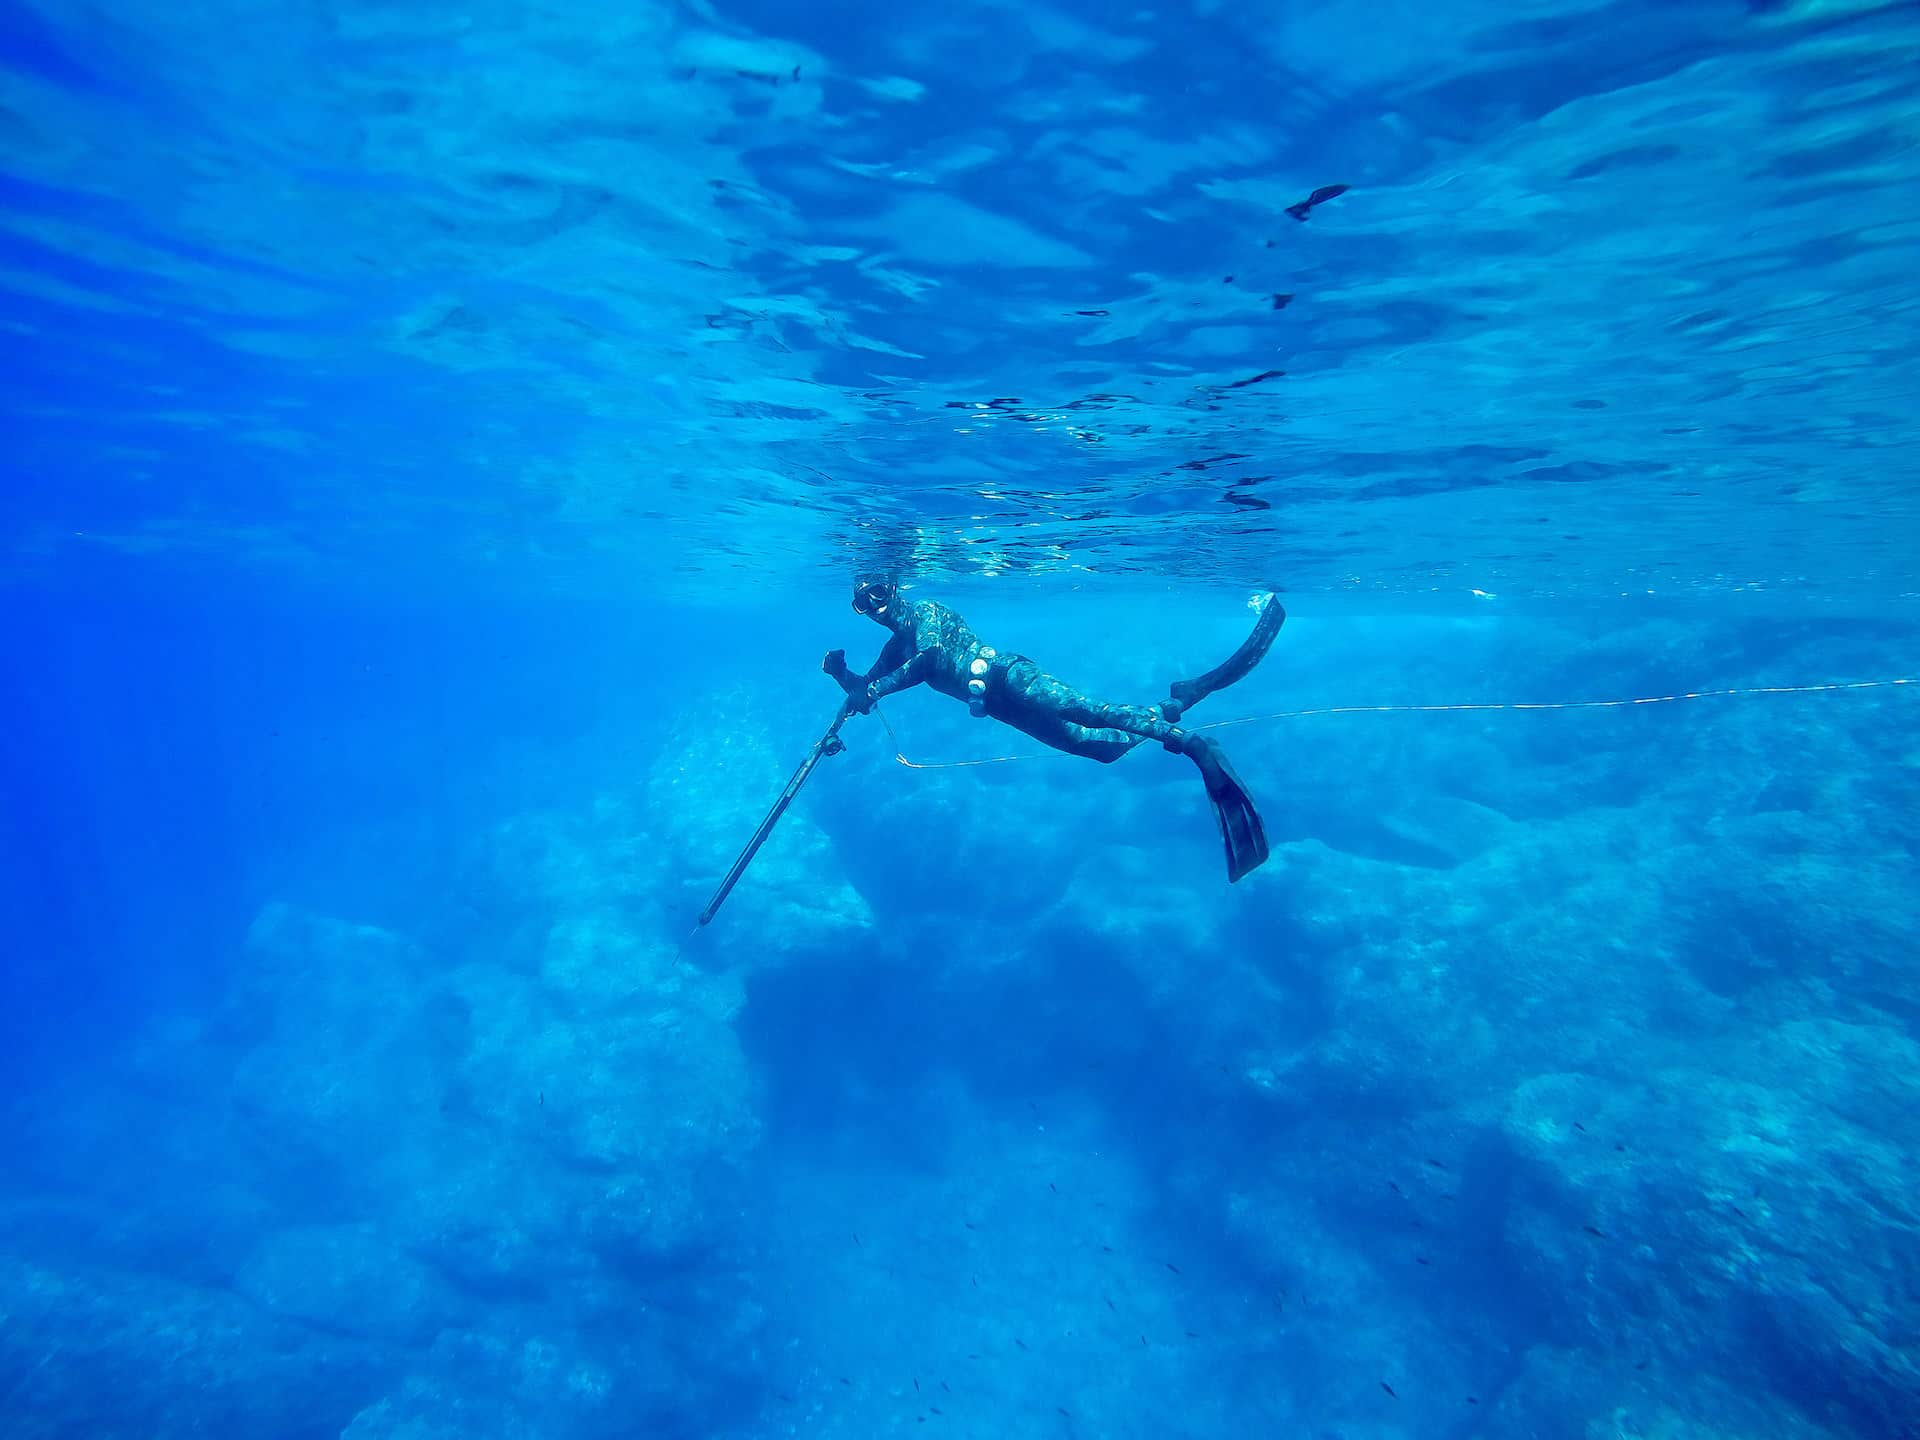 spearfishing with the best mask